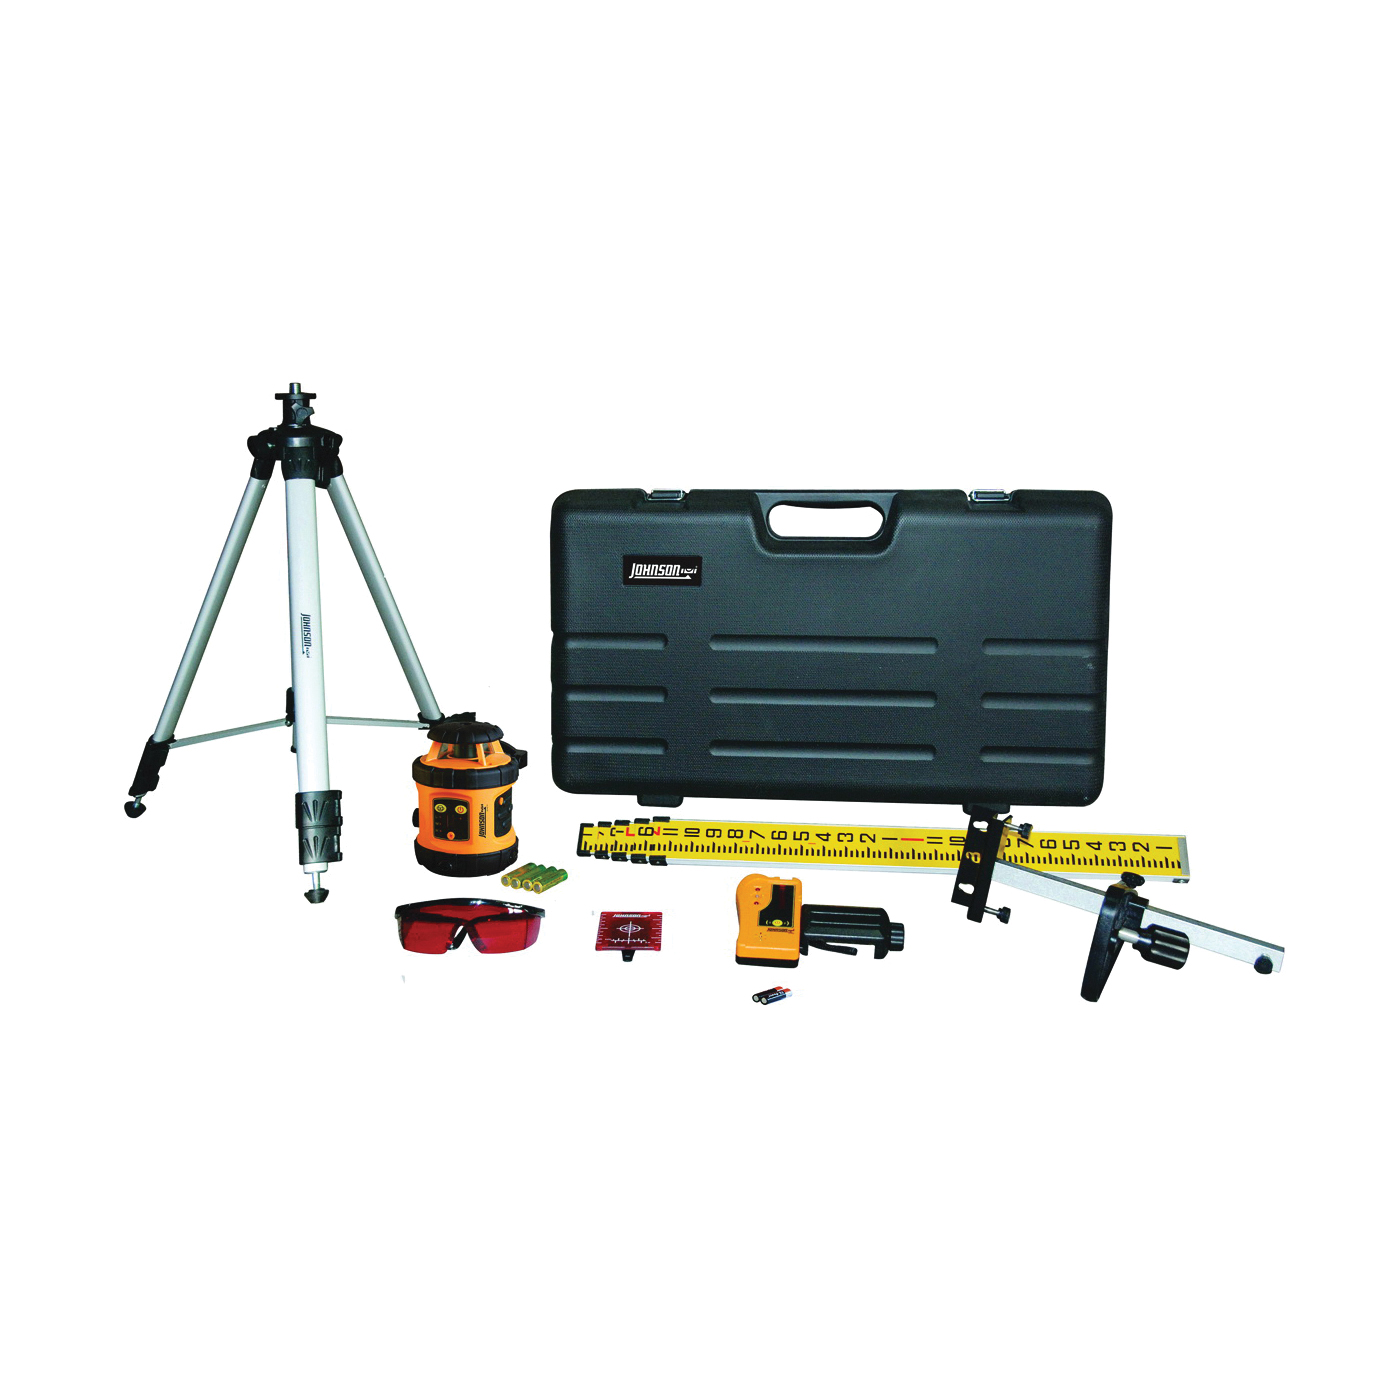 Picture of Johnson 40-6517 Laser Level Kit, 200 ft, +/-1/8 in at 50 ft Accuracy, Red Laser